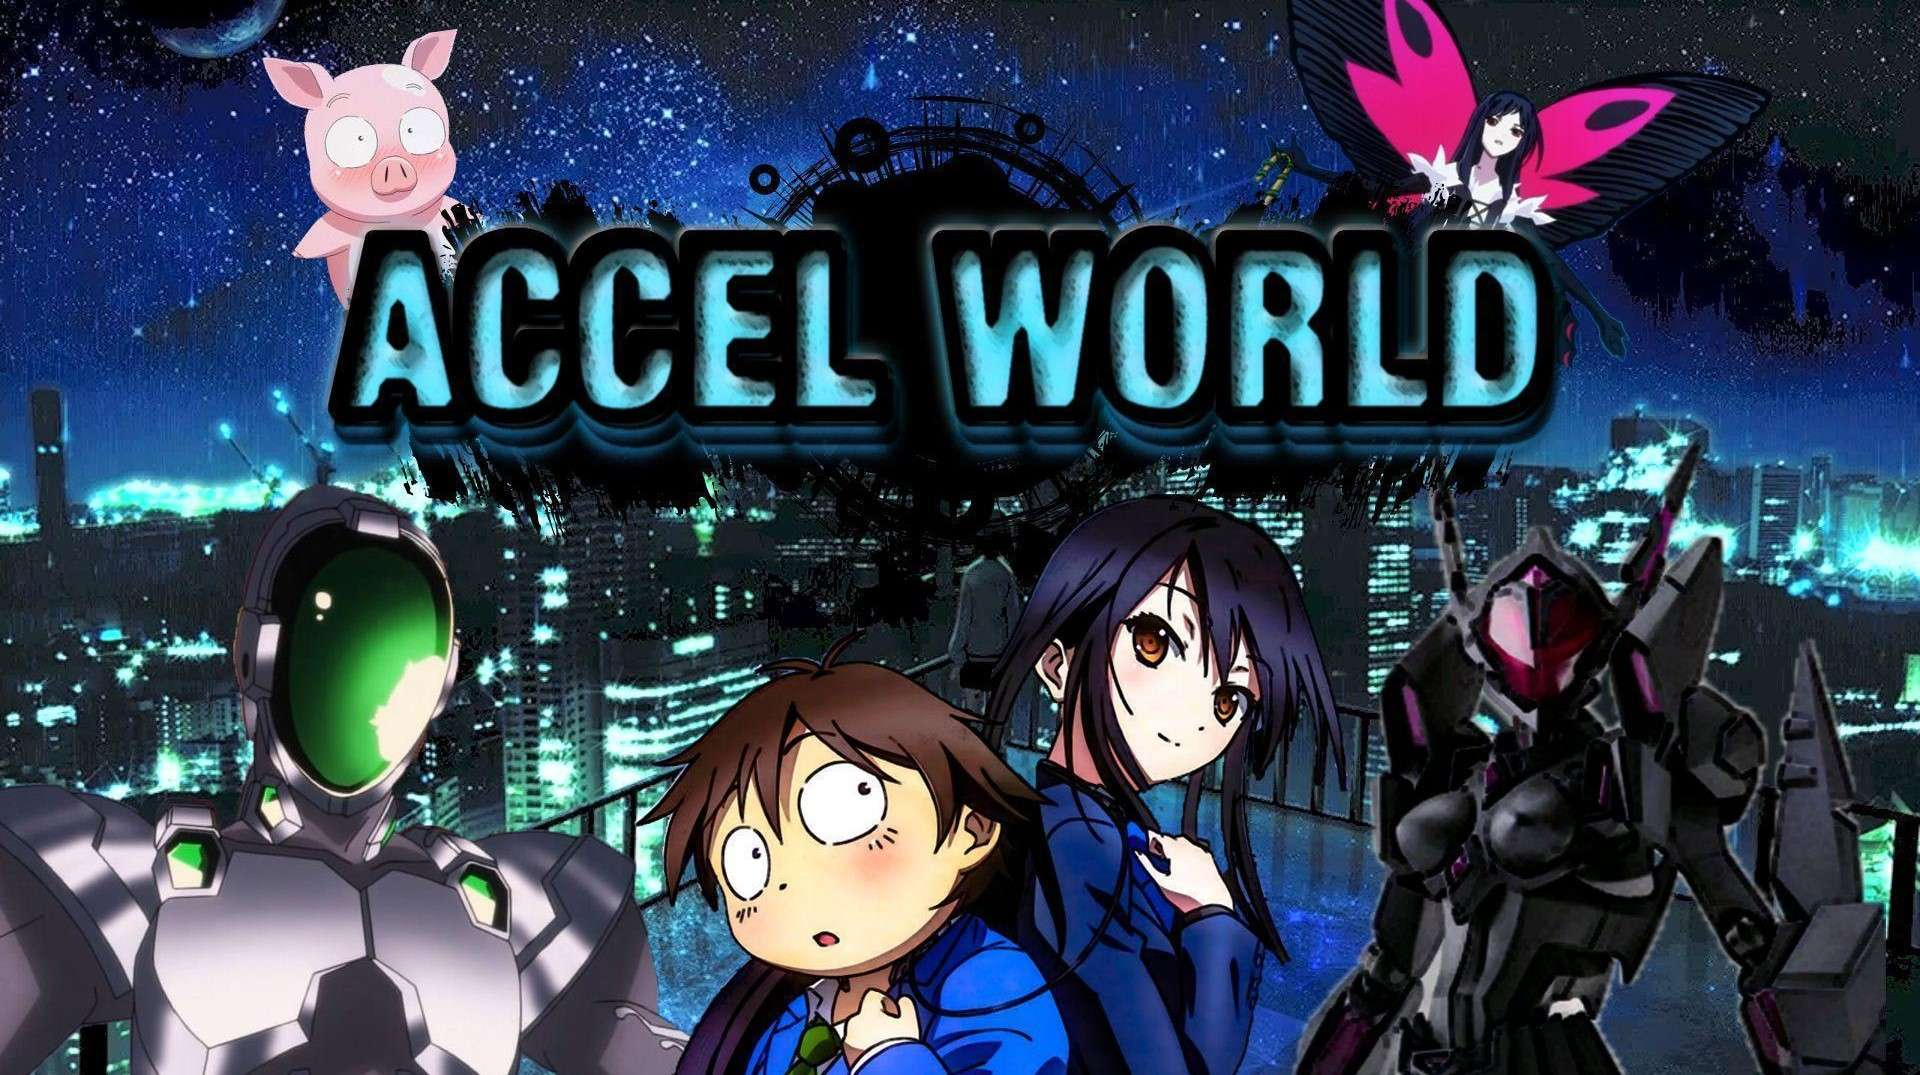 Accel World- anime like overlord